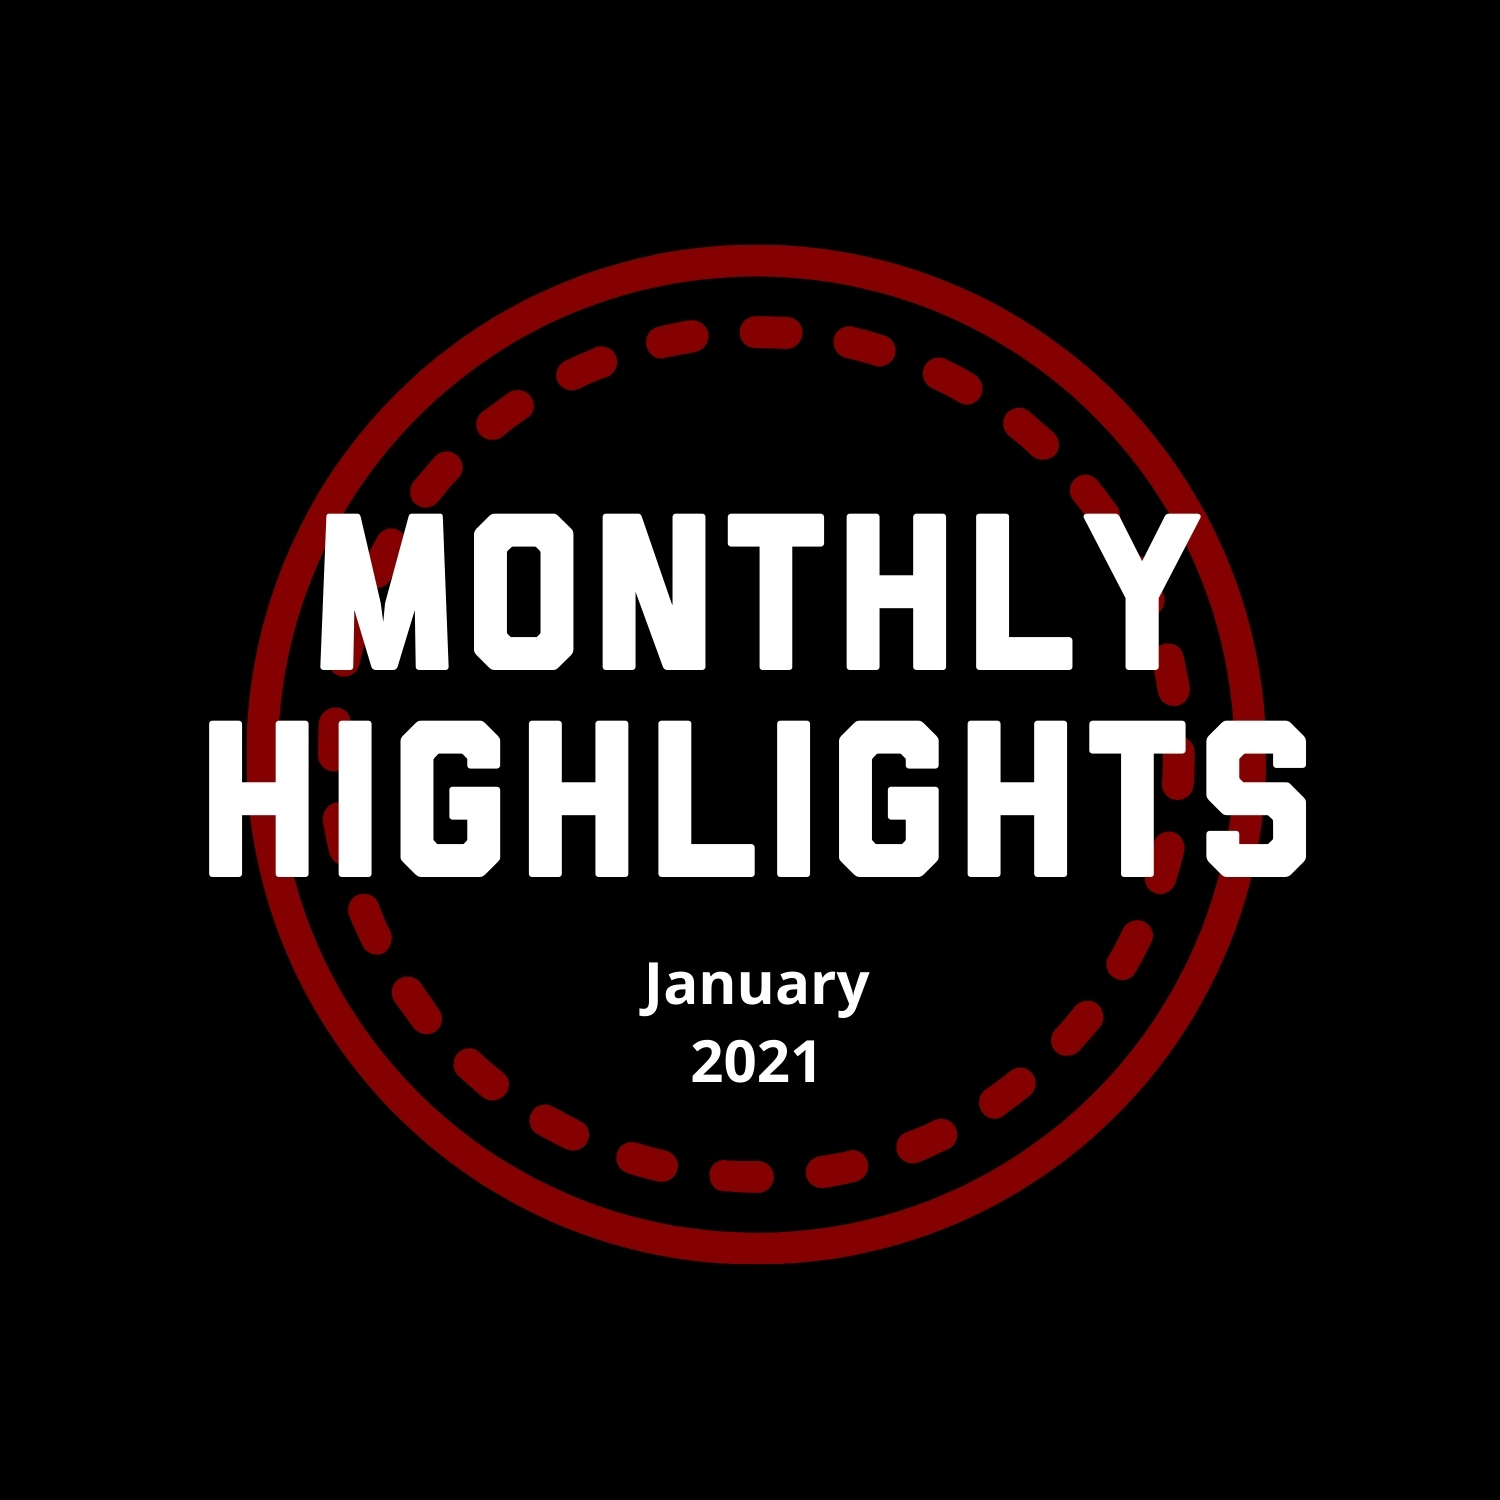 Monthly Highlights Jan 2021